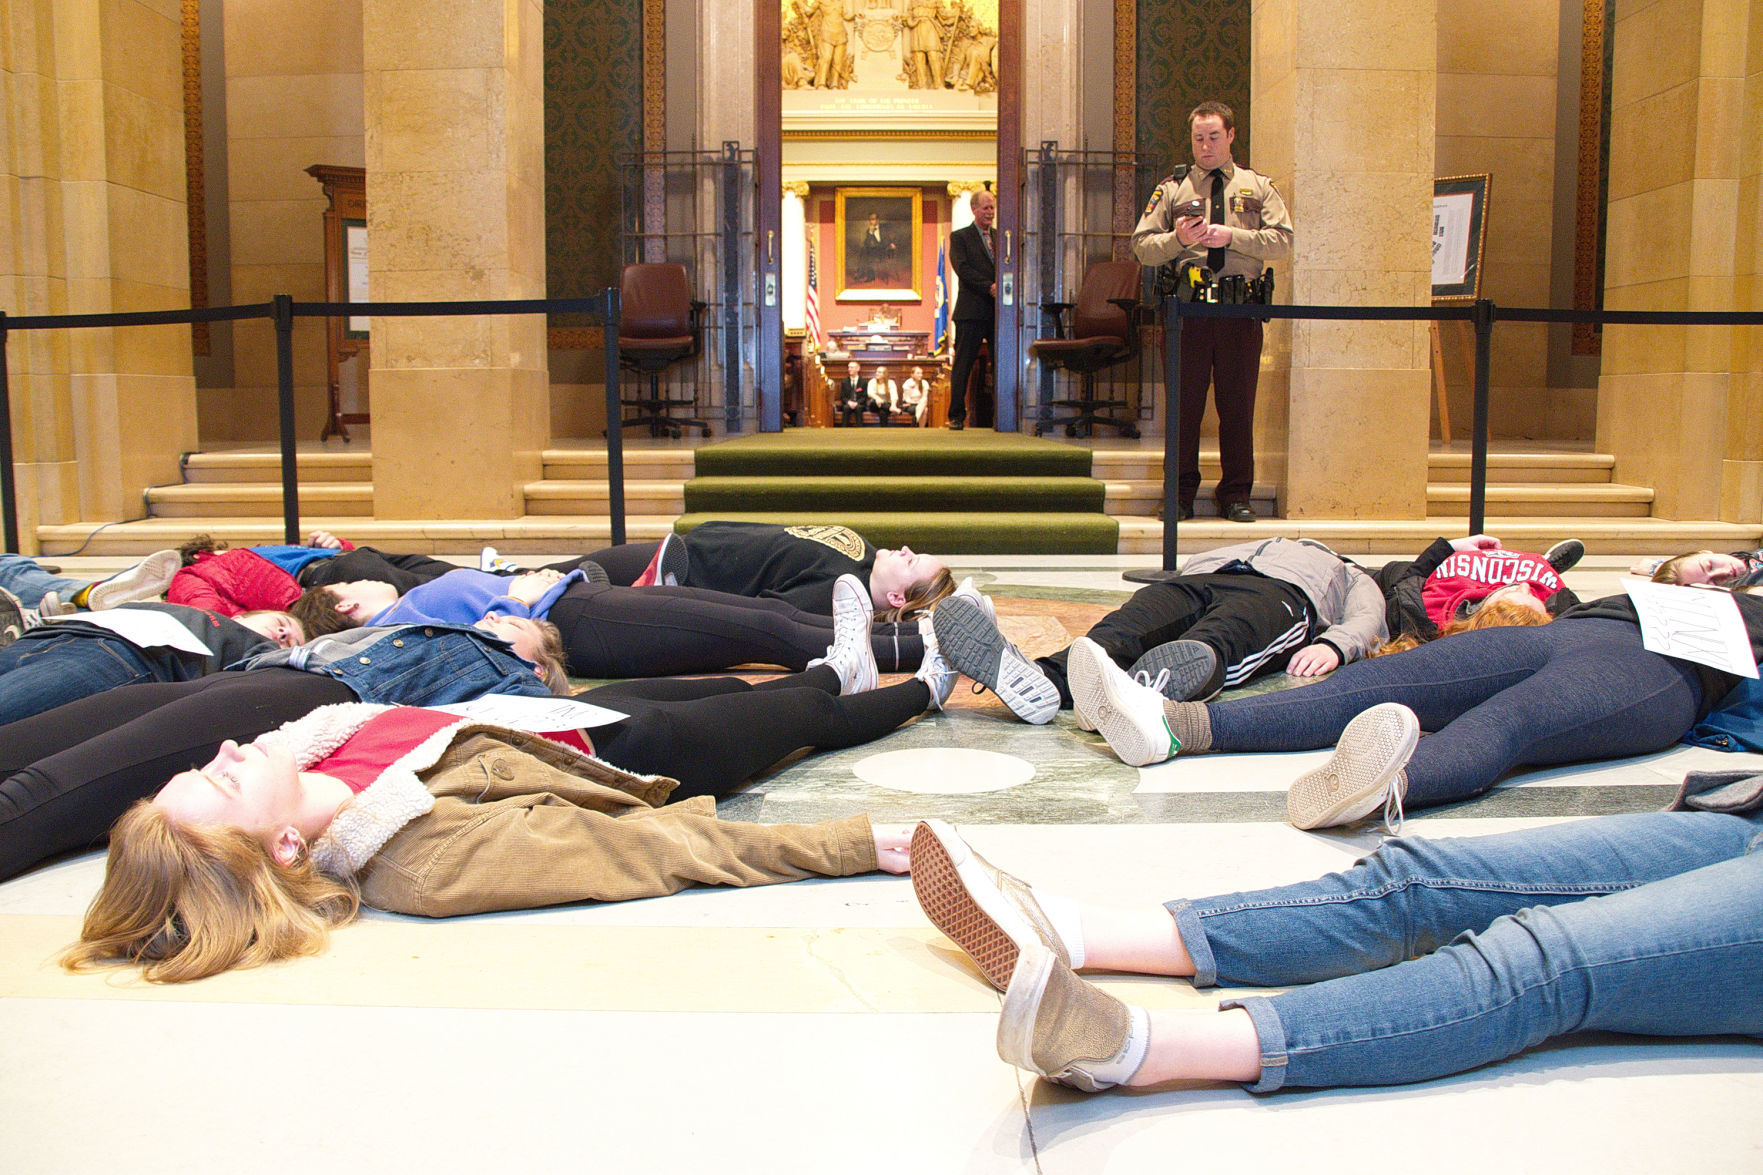 Twenty Two Students Stage A U201cdie Inu201d Thursday In Front Of The Minnesota  House Chamber In Protest Of The Legislature Taking No Action On Gun Control  ...